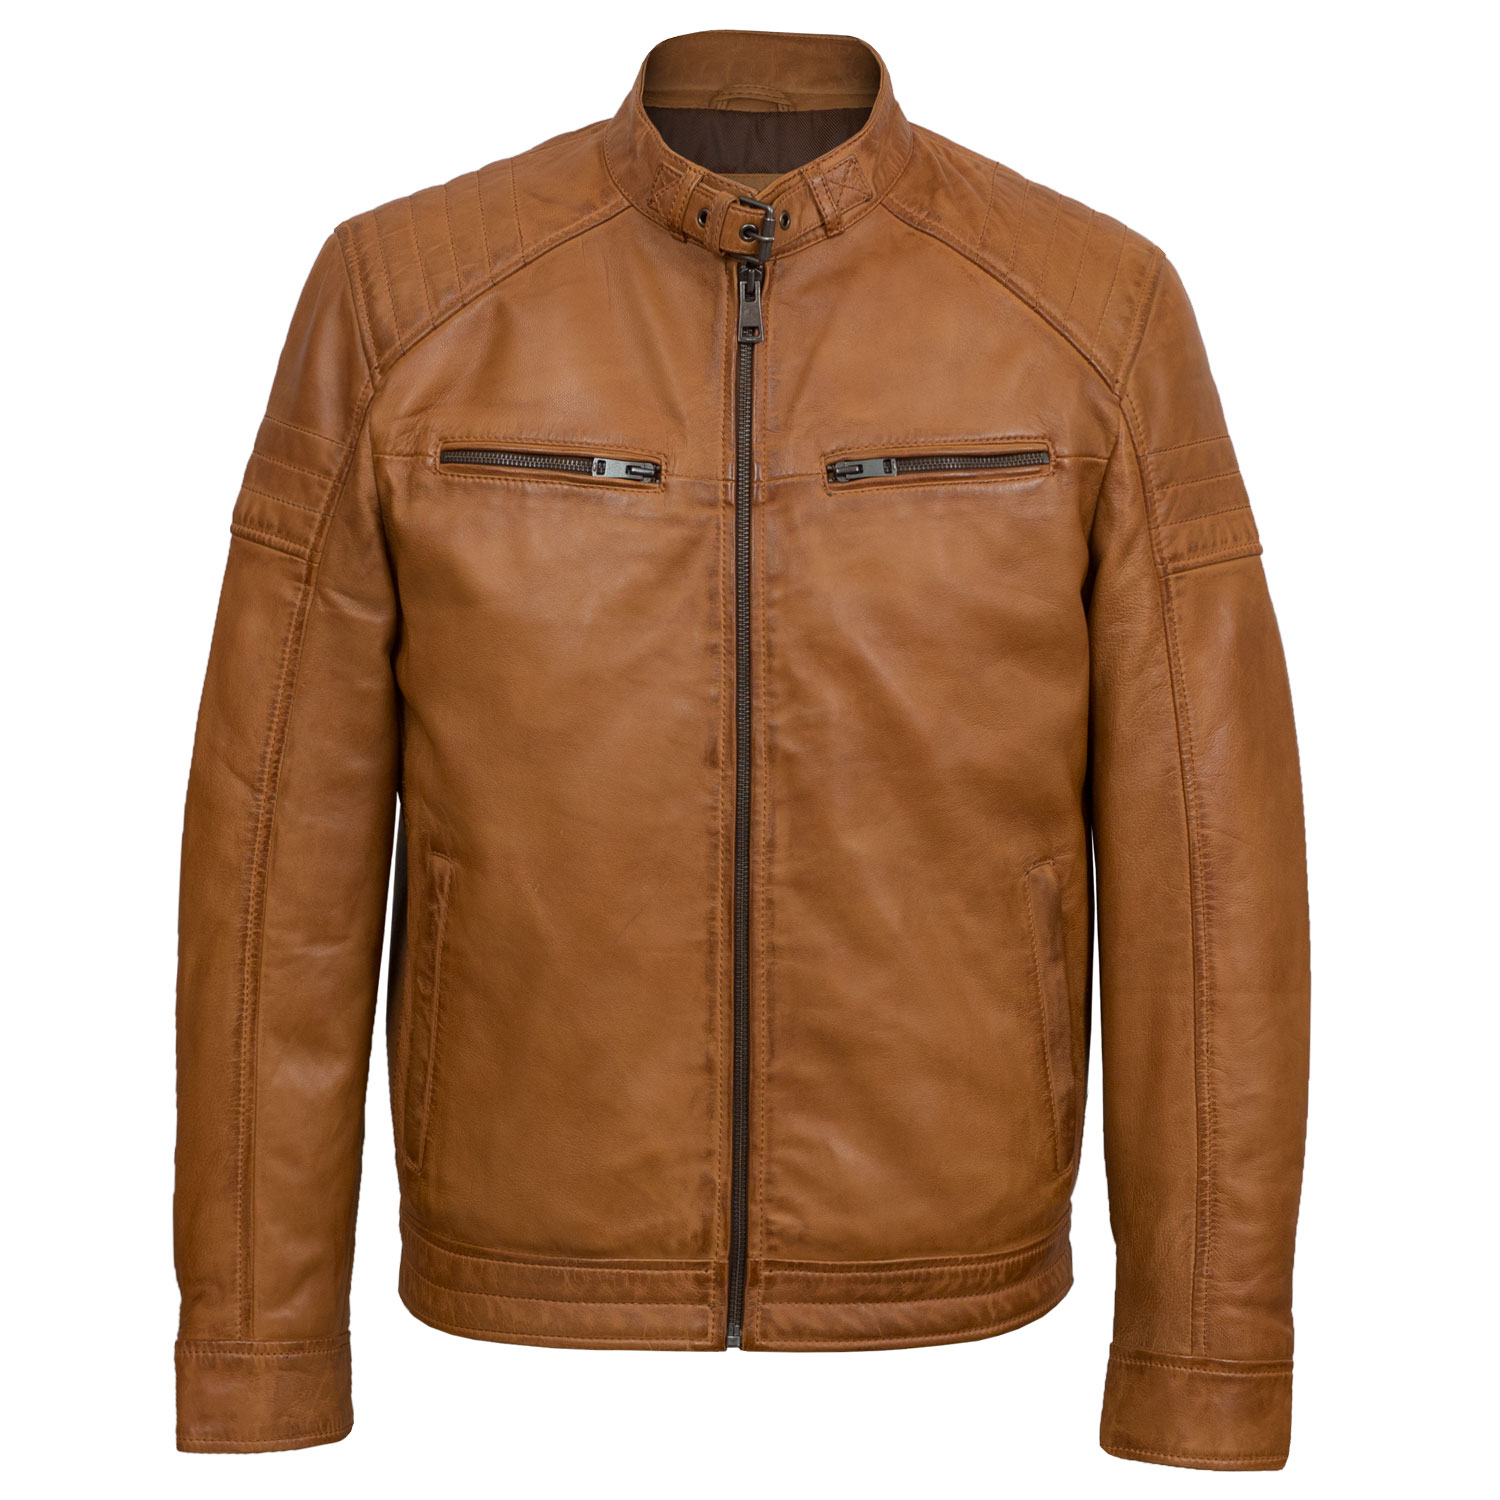 Men's Tan Leather Jackets